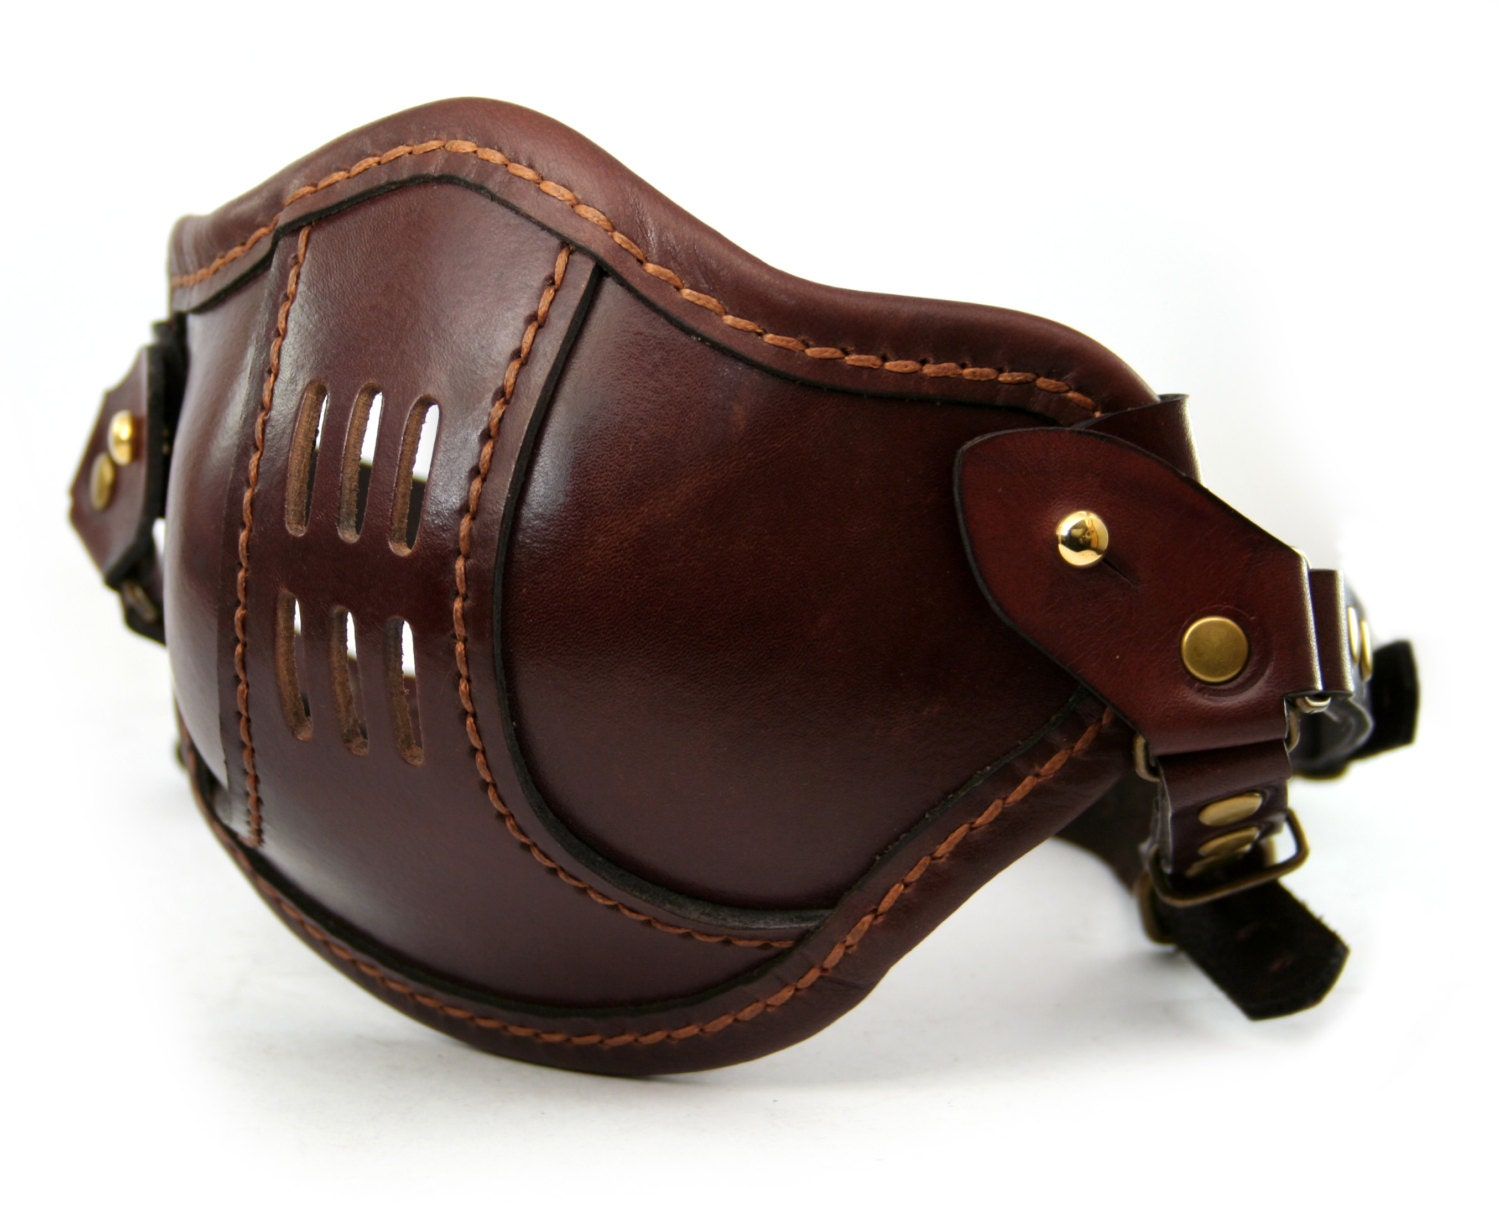 STEAMPUNK LEATHER Mask brown leather SMPL/a Raider design - MannAndCo